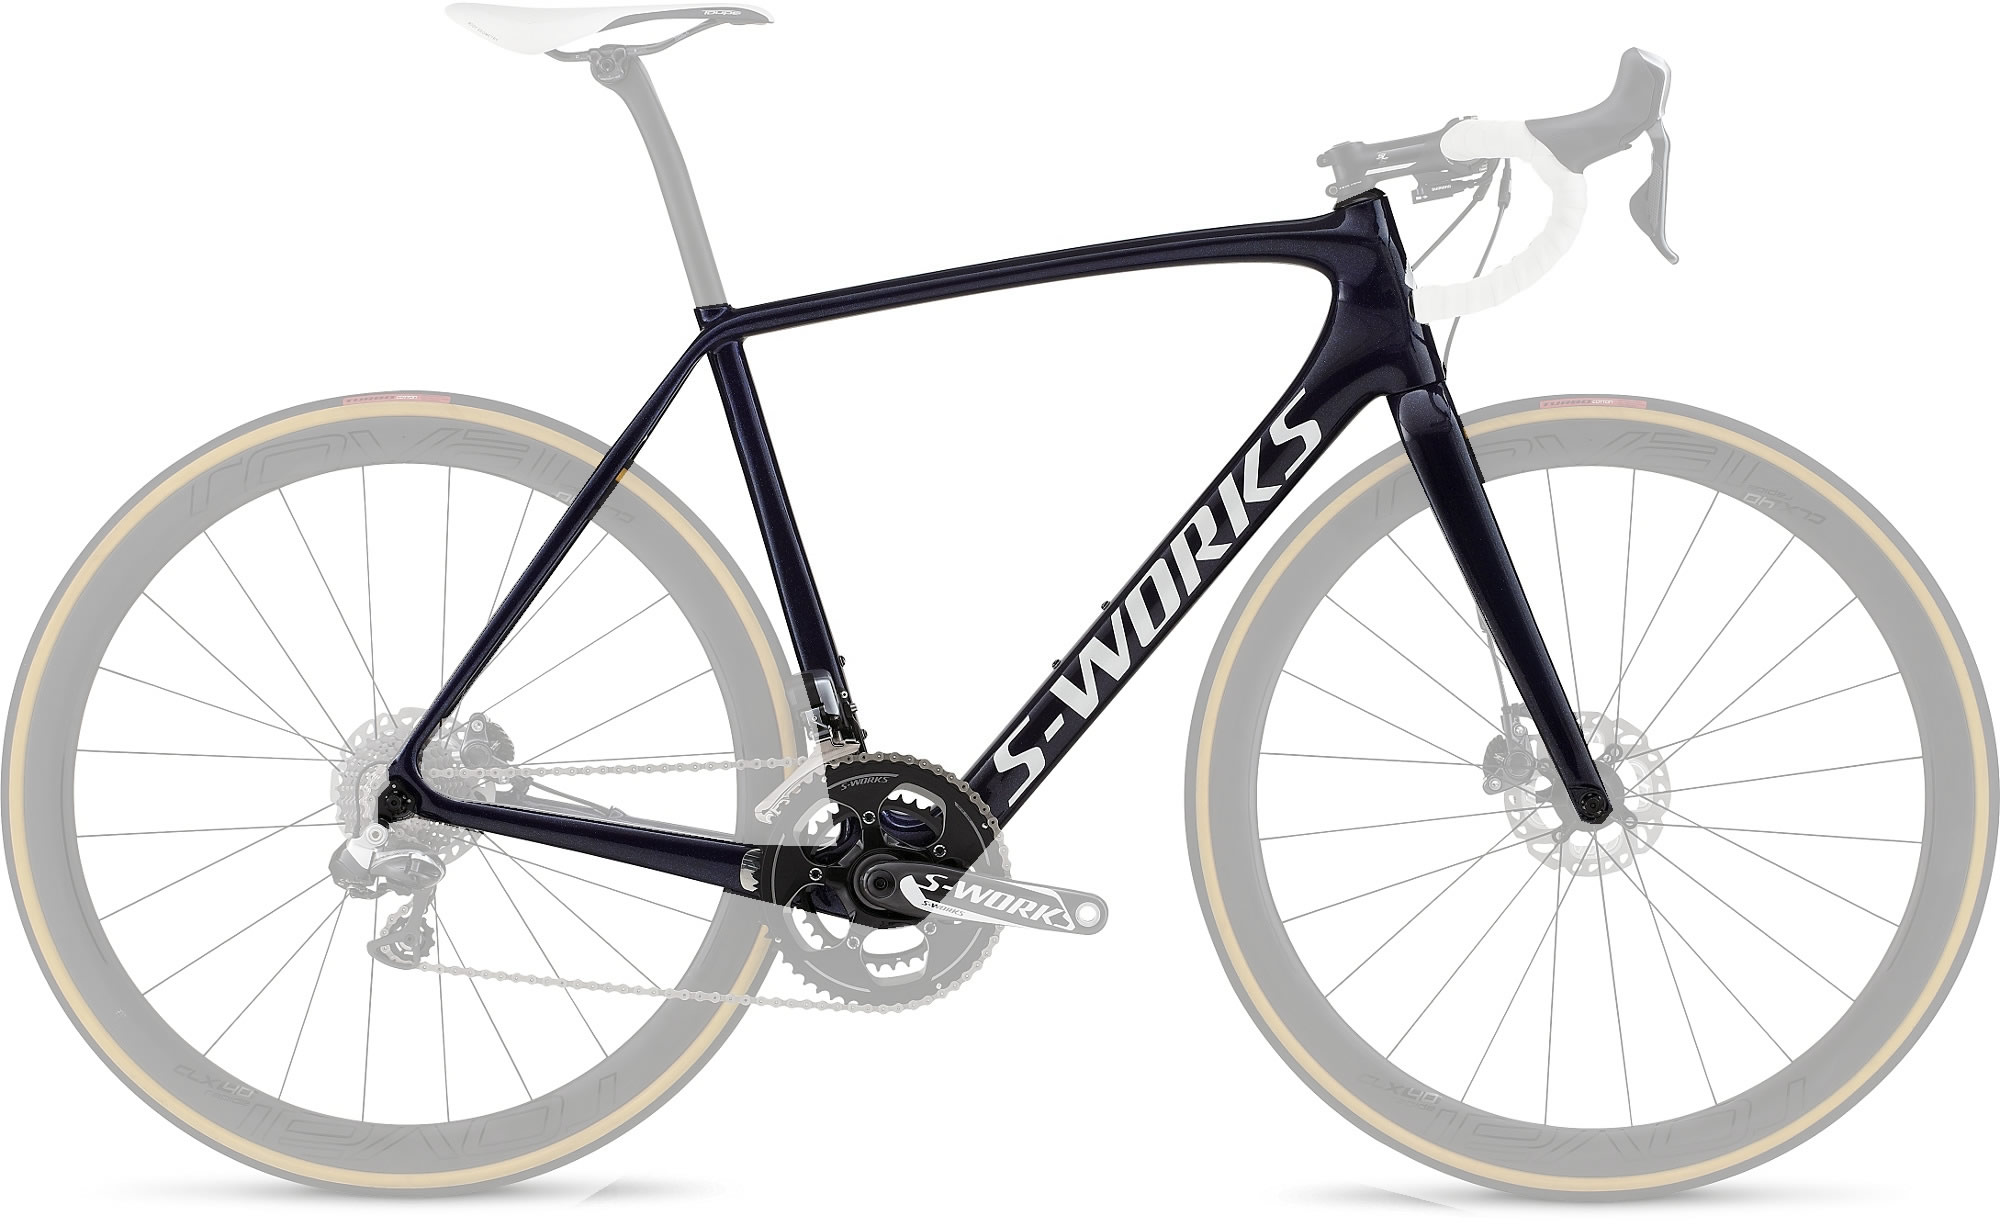 09a24625ca4 2016 Specialized S-WORKS TARMAC DISC DI2 (FRAME ONLY) - Specialized Concept  Store